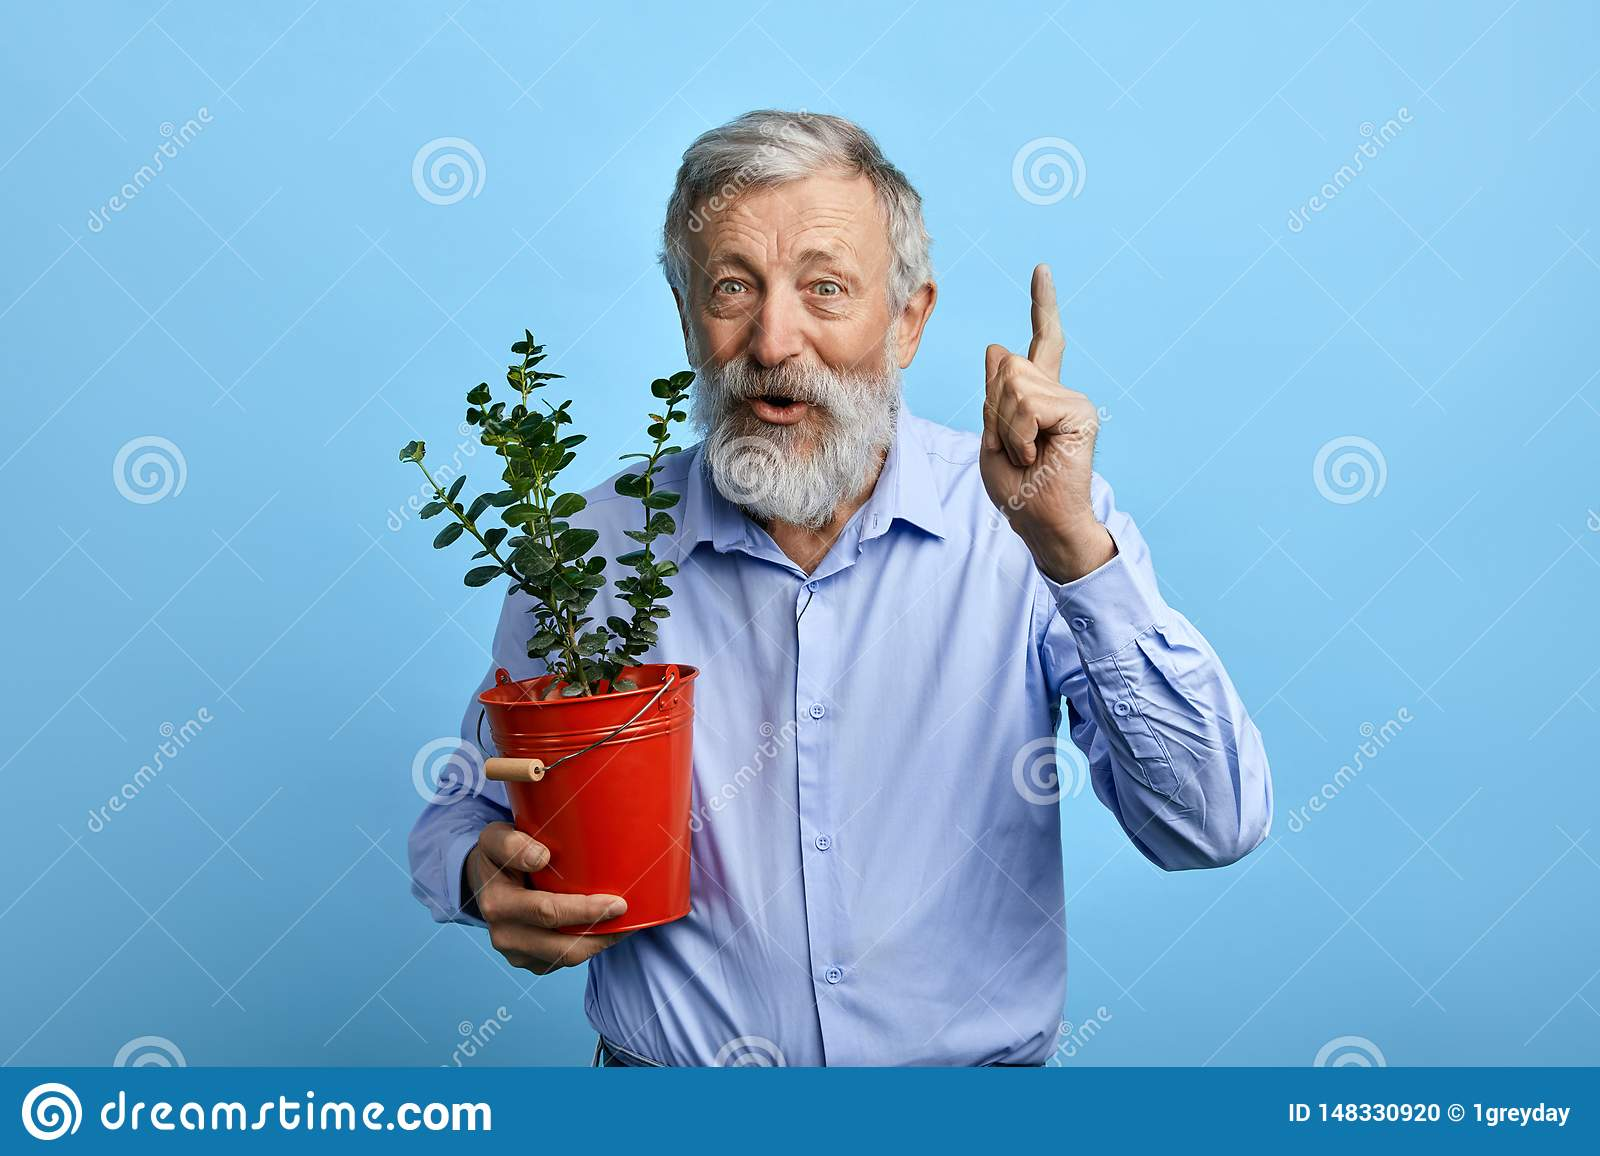 Pleasant happy man pointing up while holding a busket with flower.